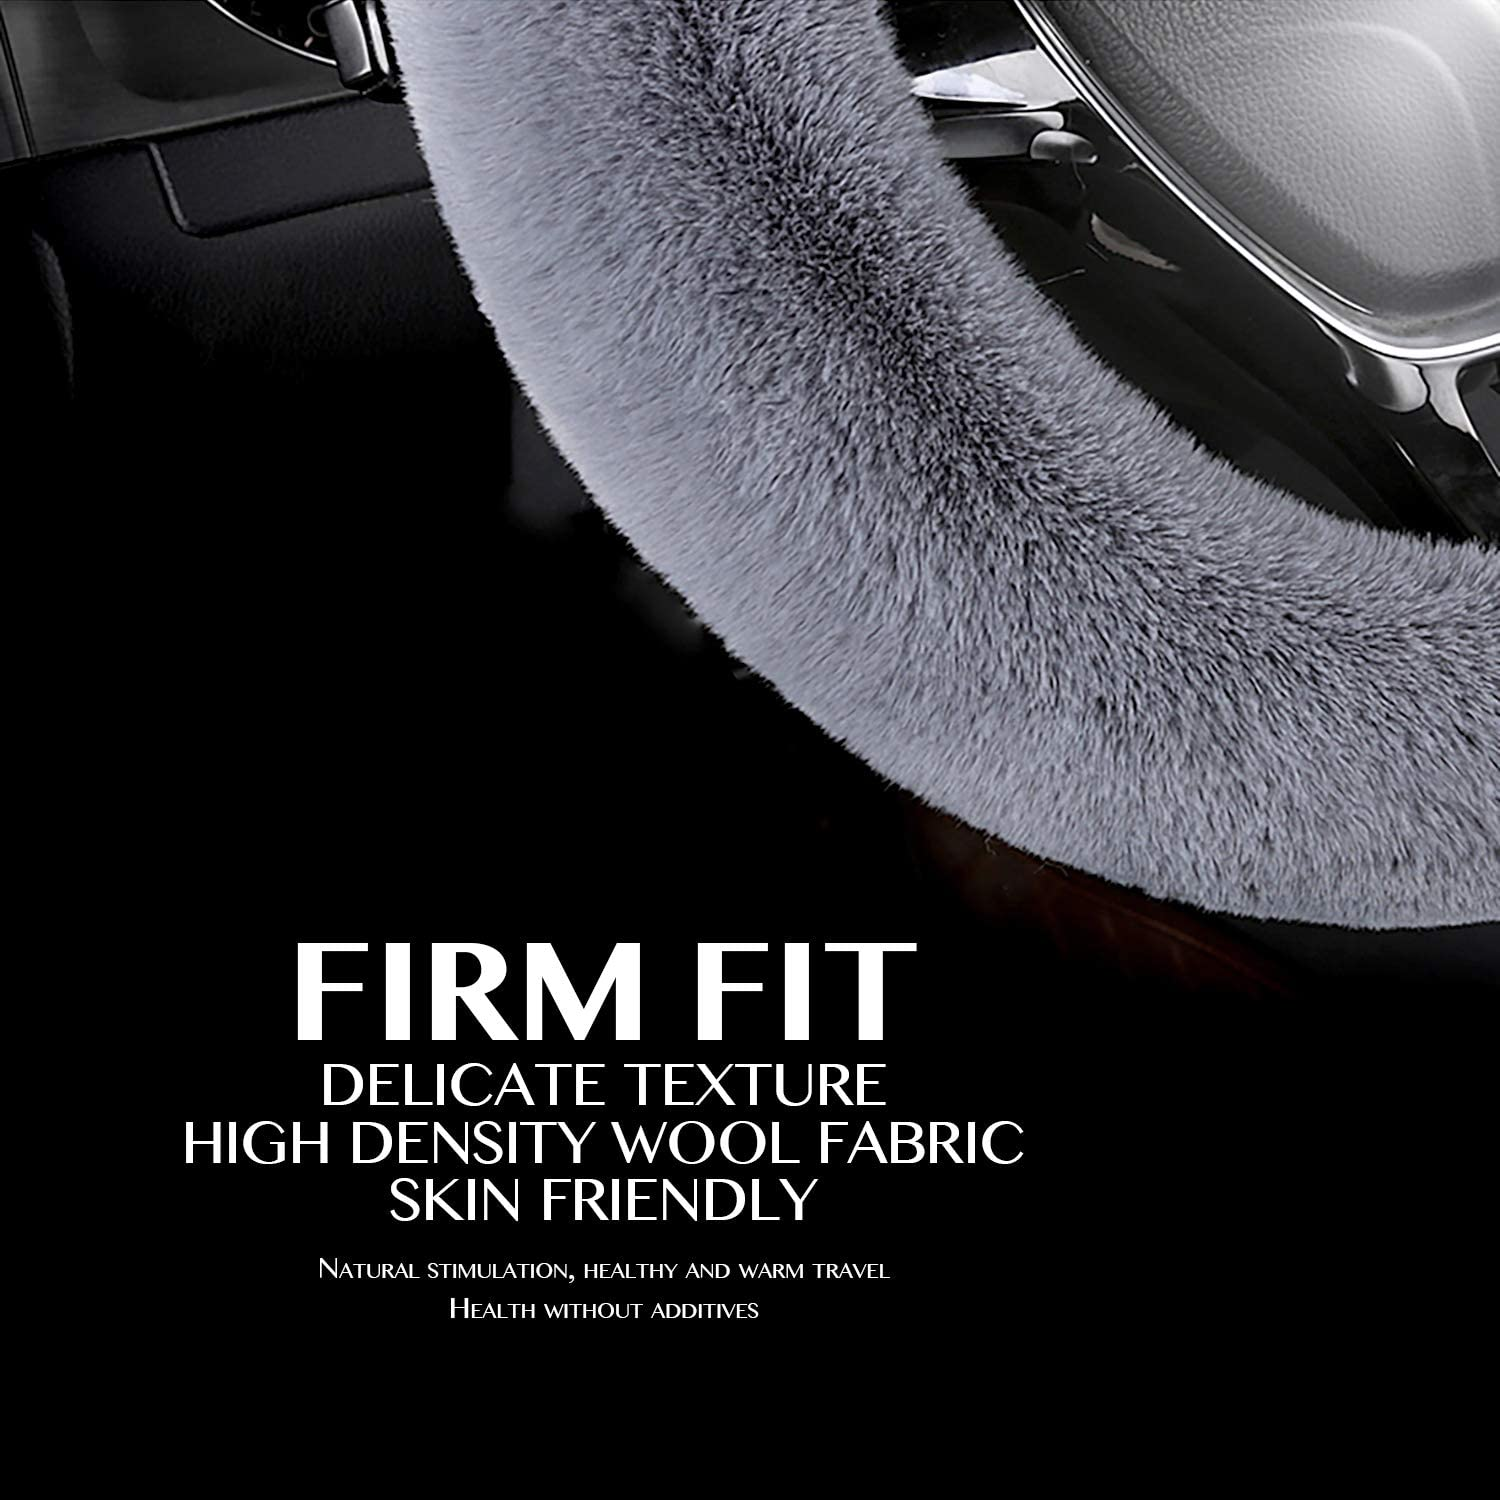 HOUSE DAY Car Steering Wheel Cover Fluffy Plush Wool Cover for Women//Girls//Ladies Universal 15 inch Black